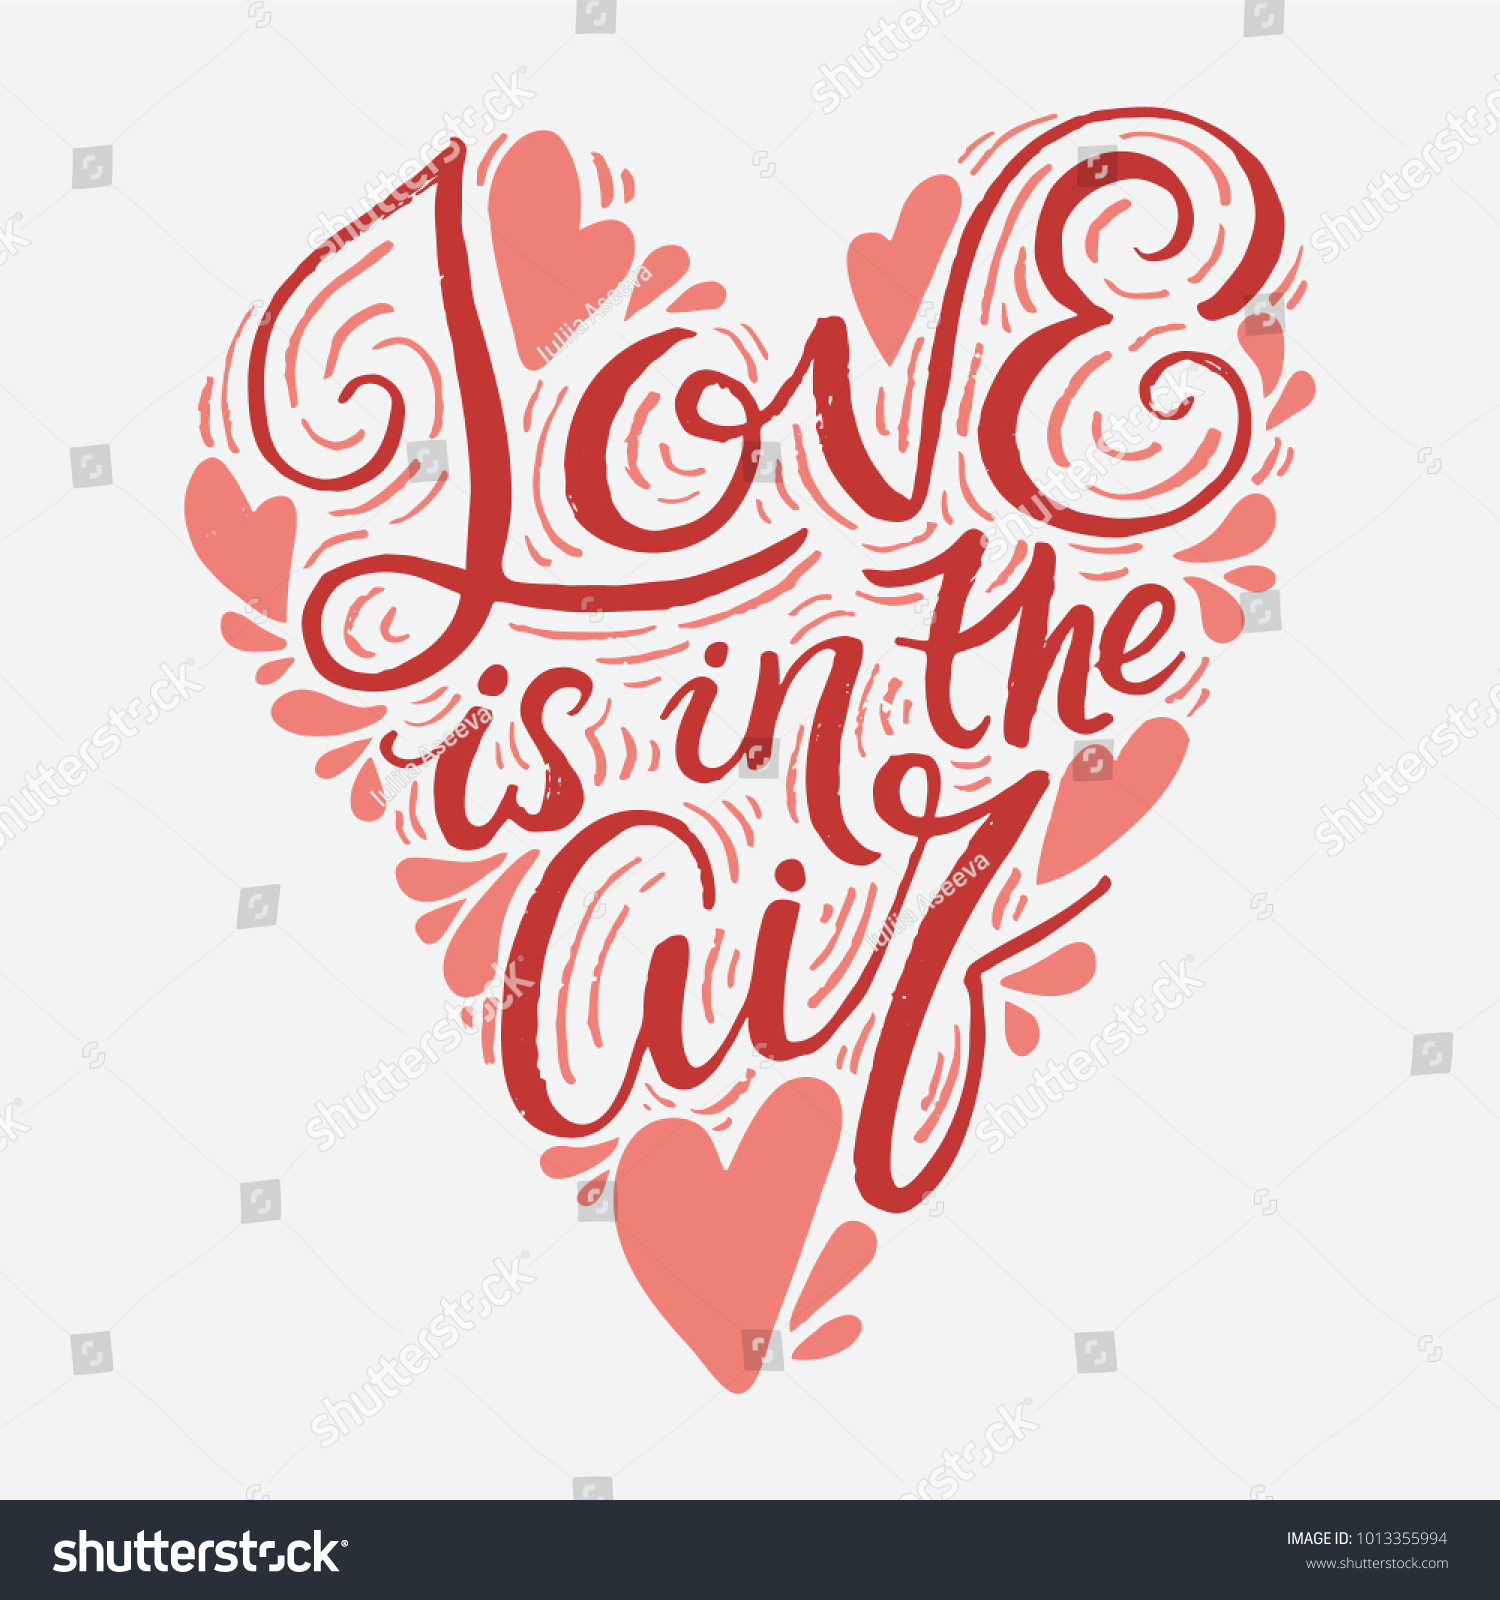 Love is in the air. Hand drawn romantic lettering in a heart shape ...